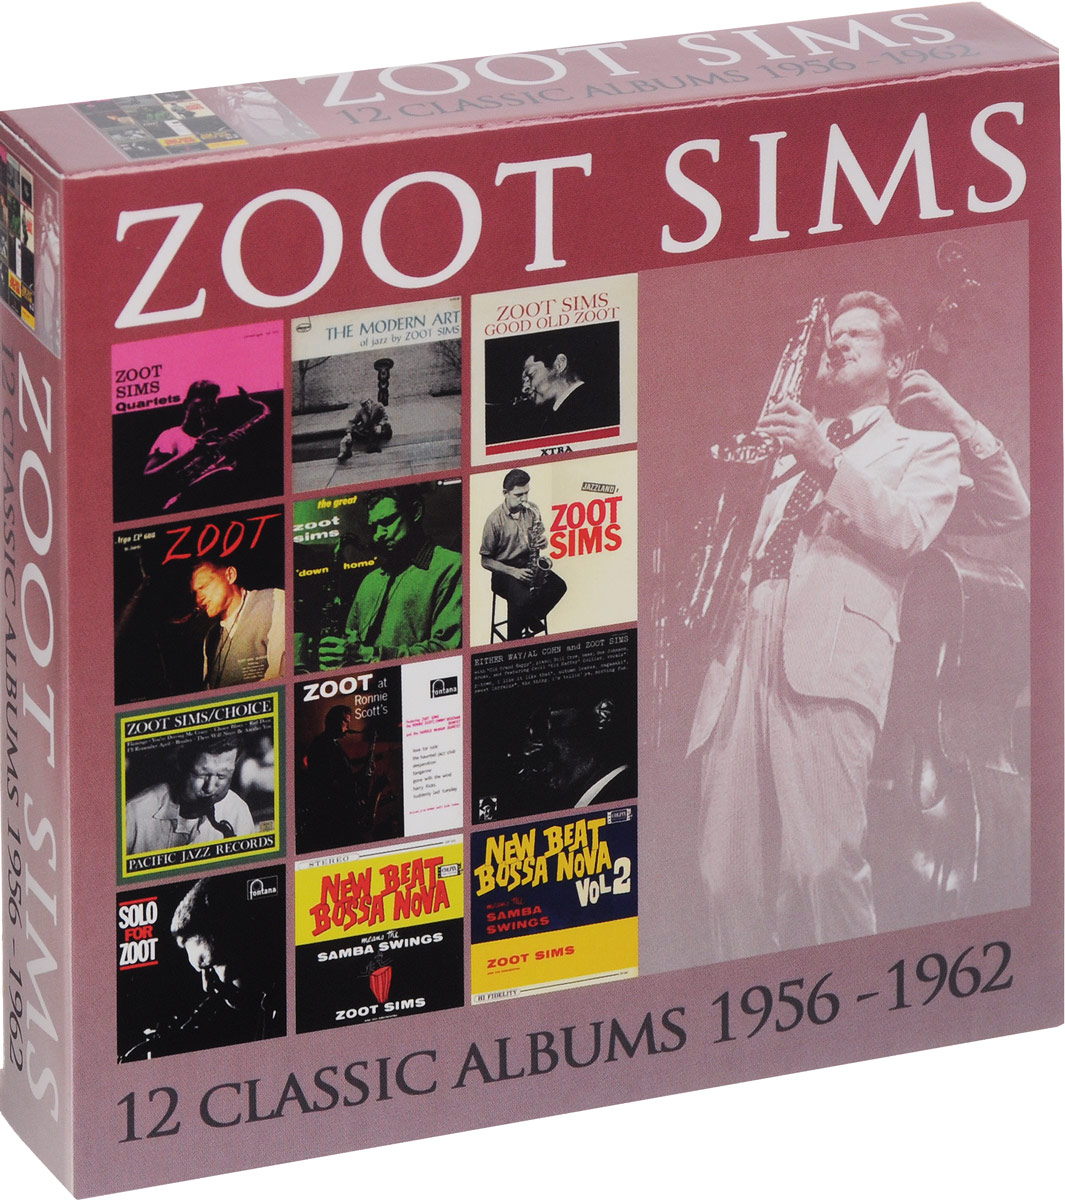 Зут Симс Zoot Sims. 12 Classic Albums 1956 - 1962 (6 CD) walkera master cp parts 7ch transmitter devo 7e walkera devo 7e walkera master cp parts free shipping with tracking